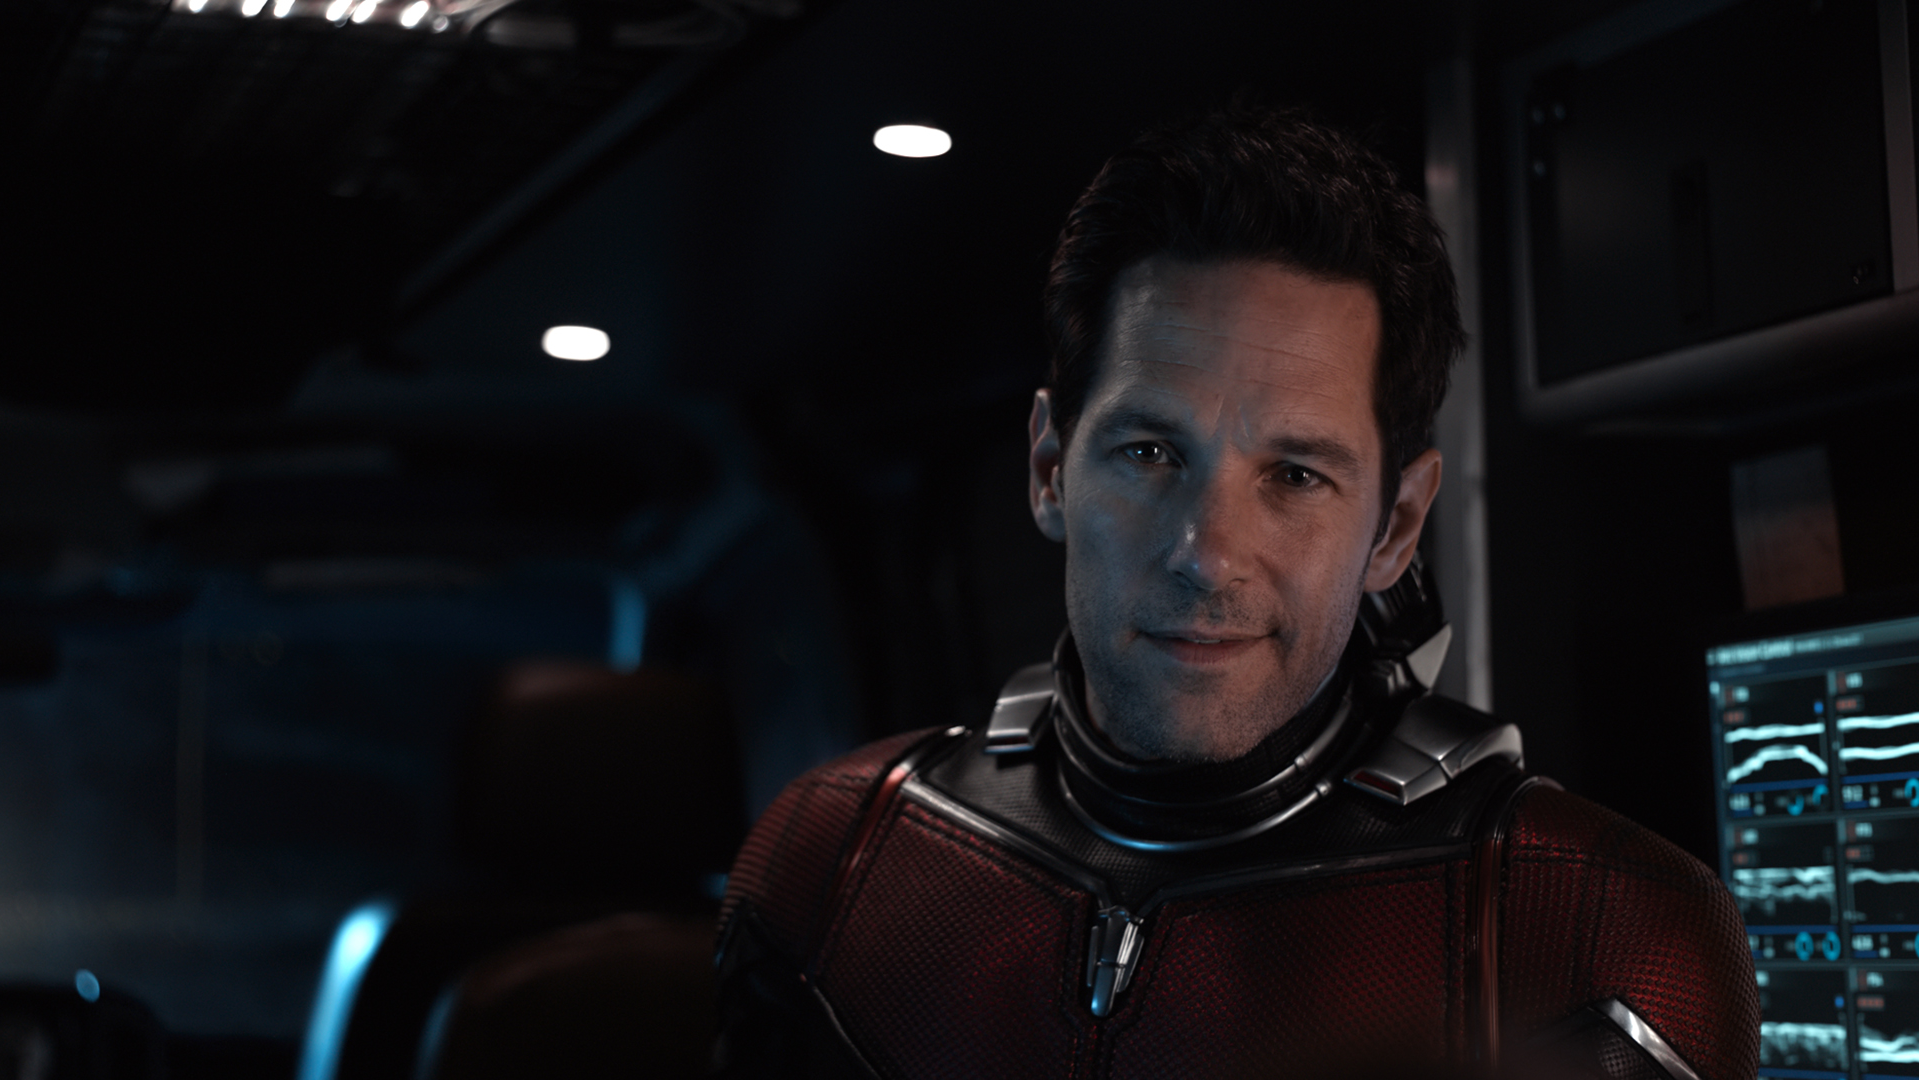 The Early Reactions Are In, People Really Seemed To Like Ant-Man & The Wasp